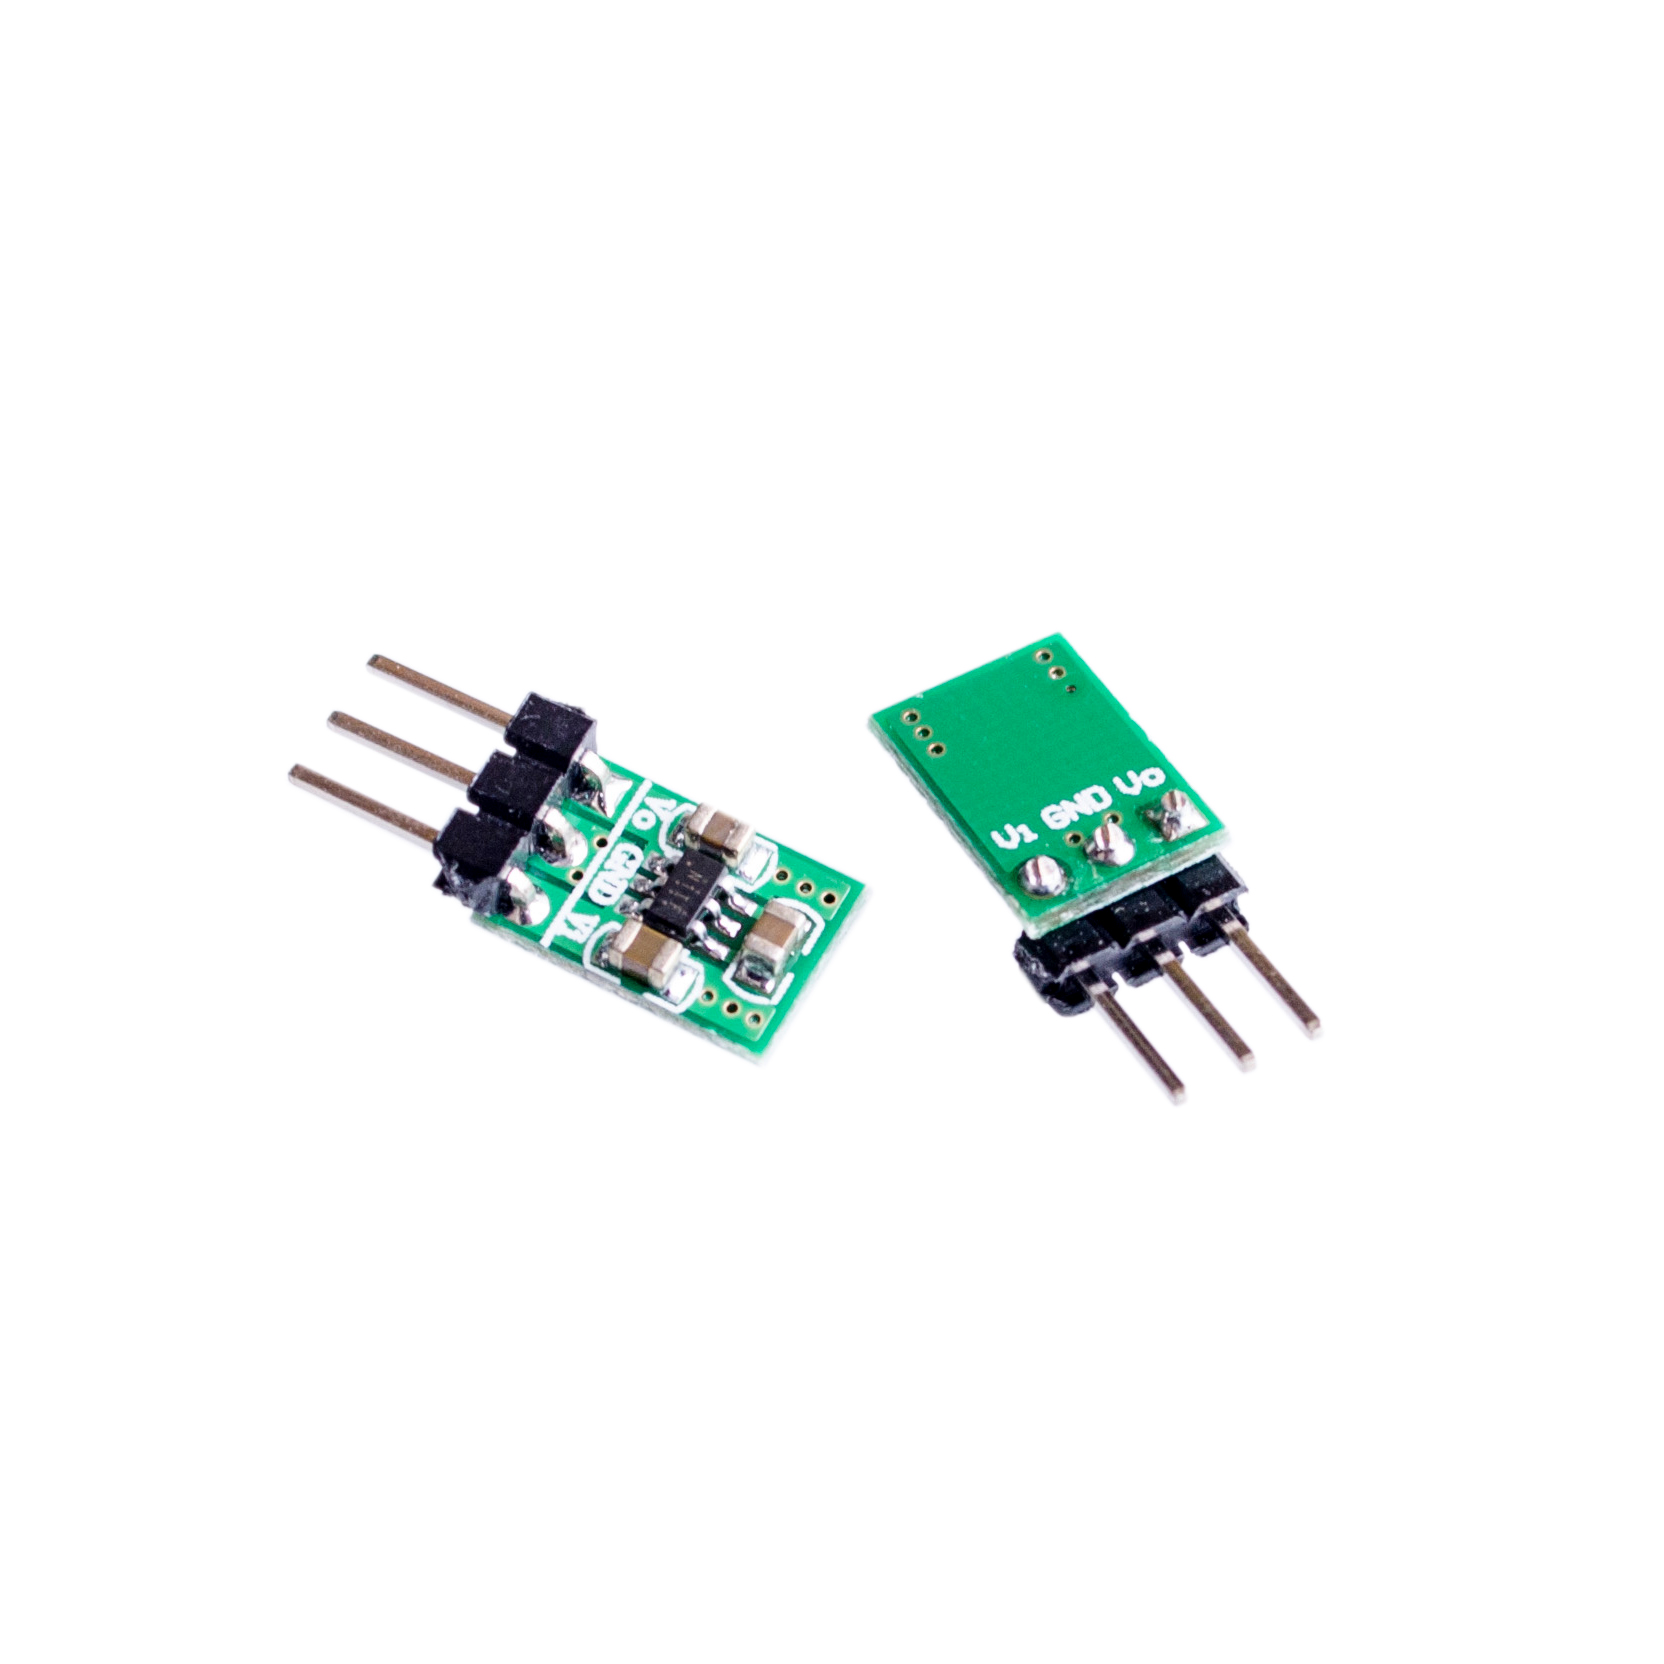 mini 2 in 1 DC DC Step-Down & Step-Up Converter 1.8V-5V to 3.3V Power for Arduino Wifi Bluetooth ESP8266 HC-05 CE1101 LED Module